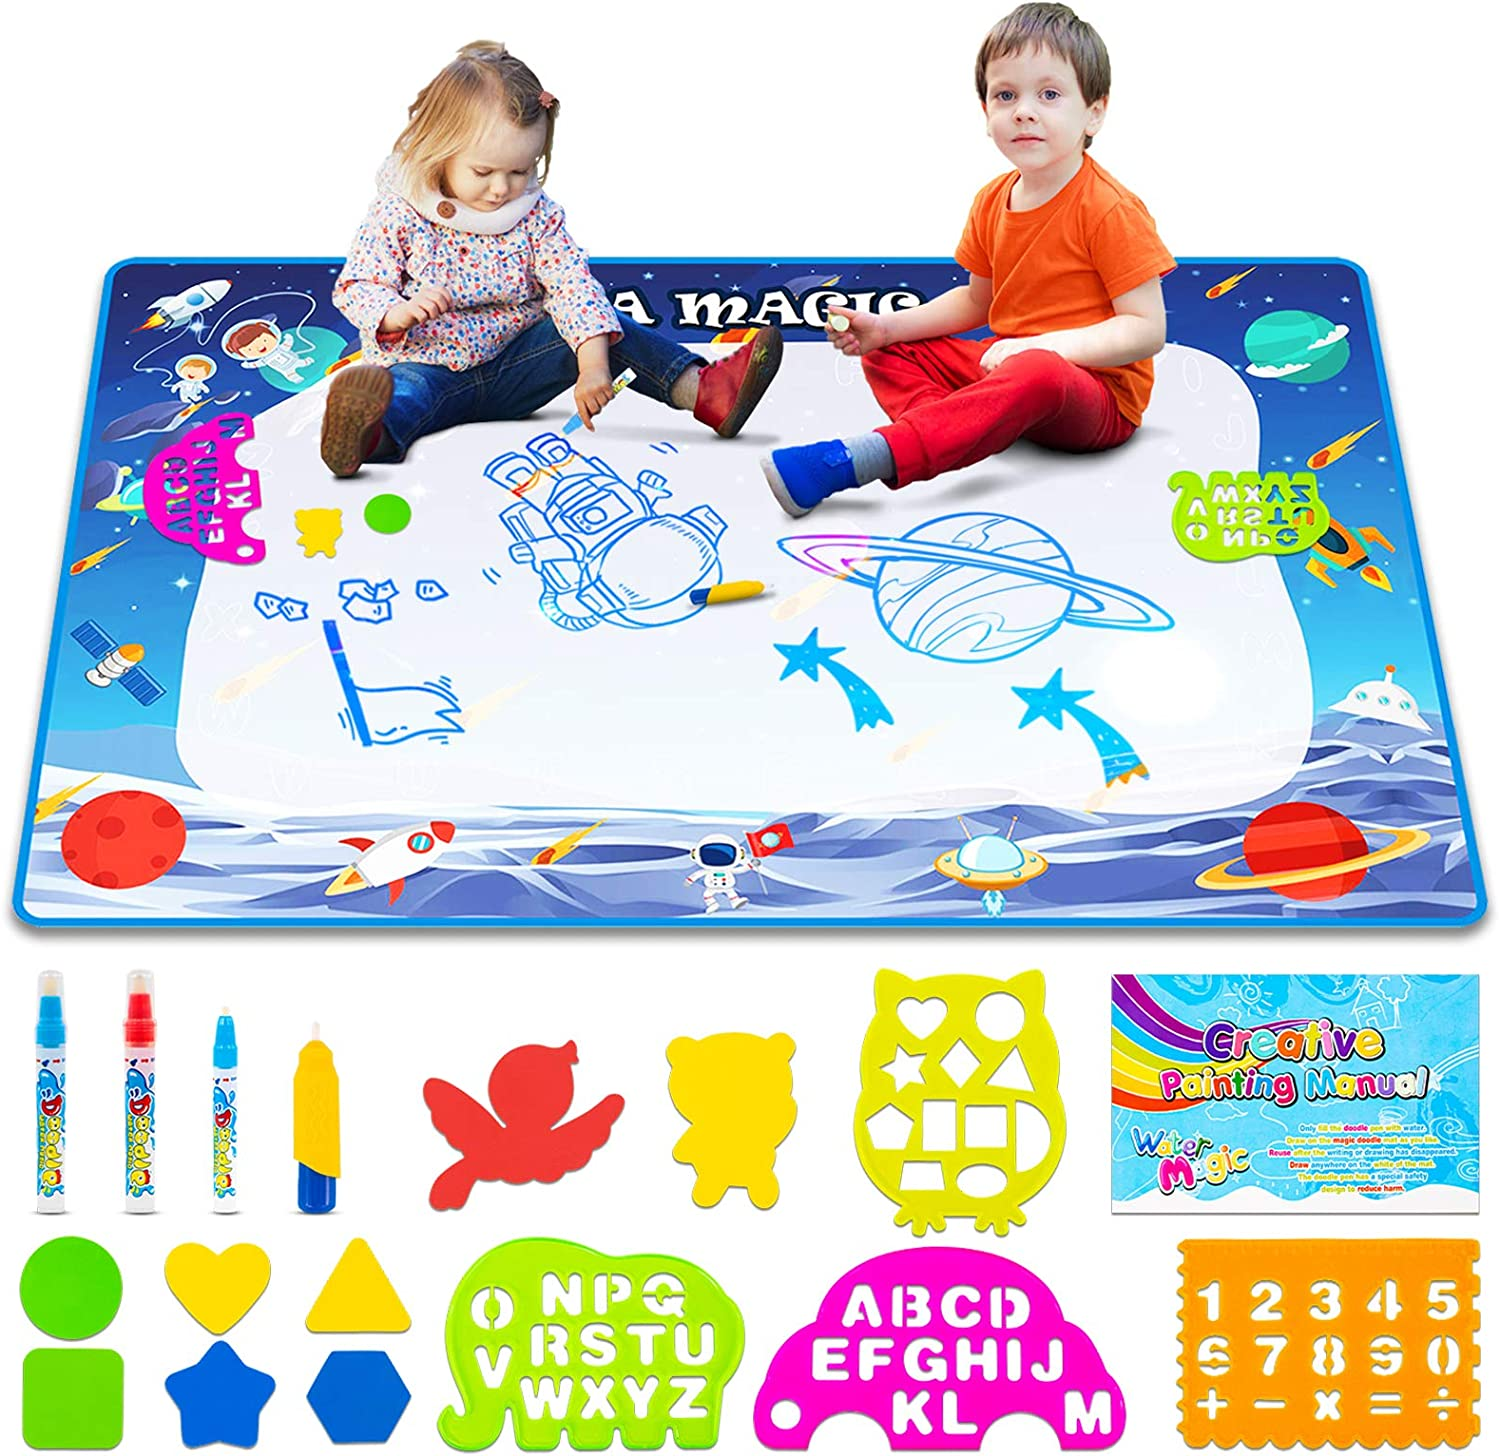 Non-Toxic Non-Messy Water Drawing Mat Toddler Educational Learning Gift Toys for 1 2 3 4 5 6 Year Old Boys Girls Space Theme X-Large 47 x 31 Aqua Magic Doodle Mat for Kids Water Doodle Mat